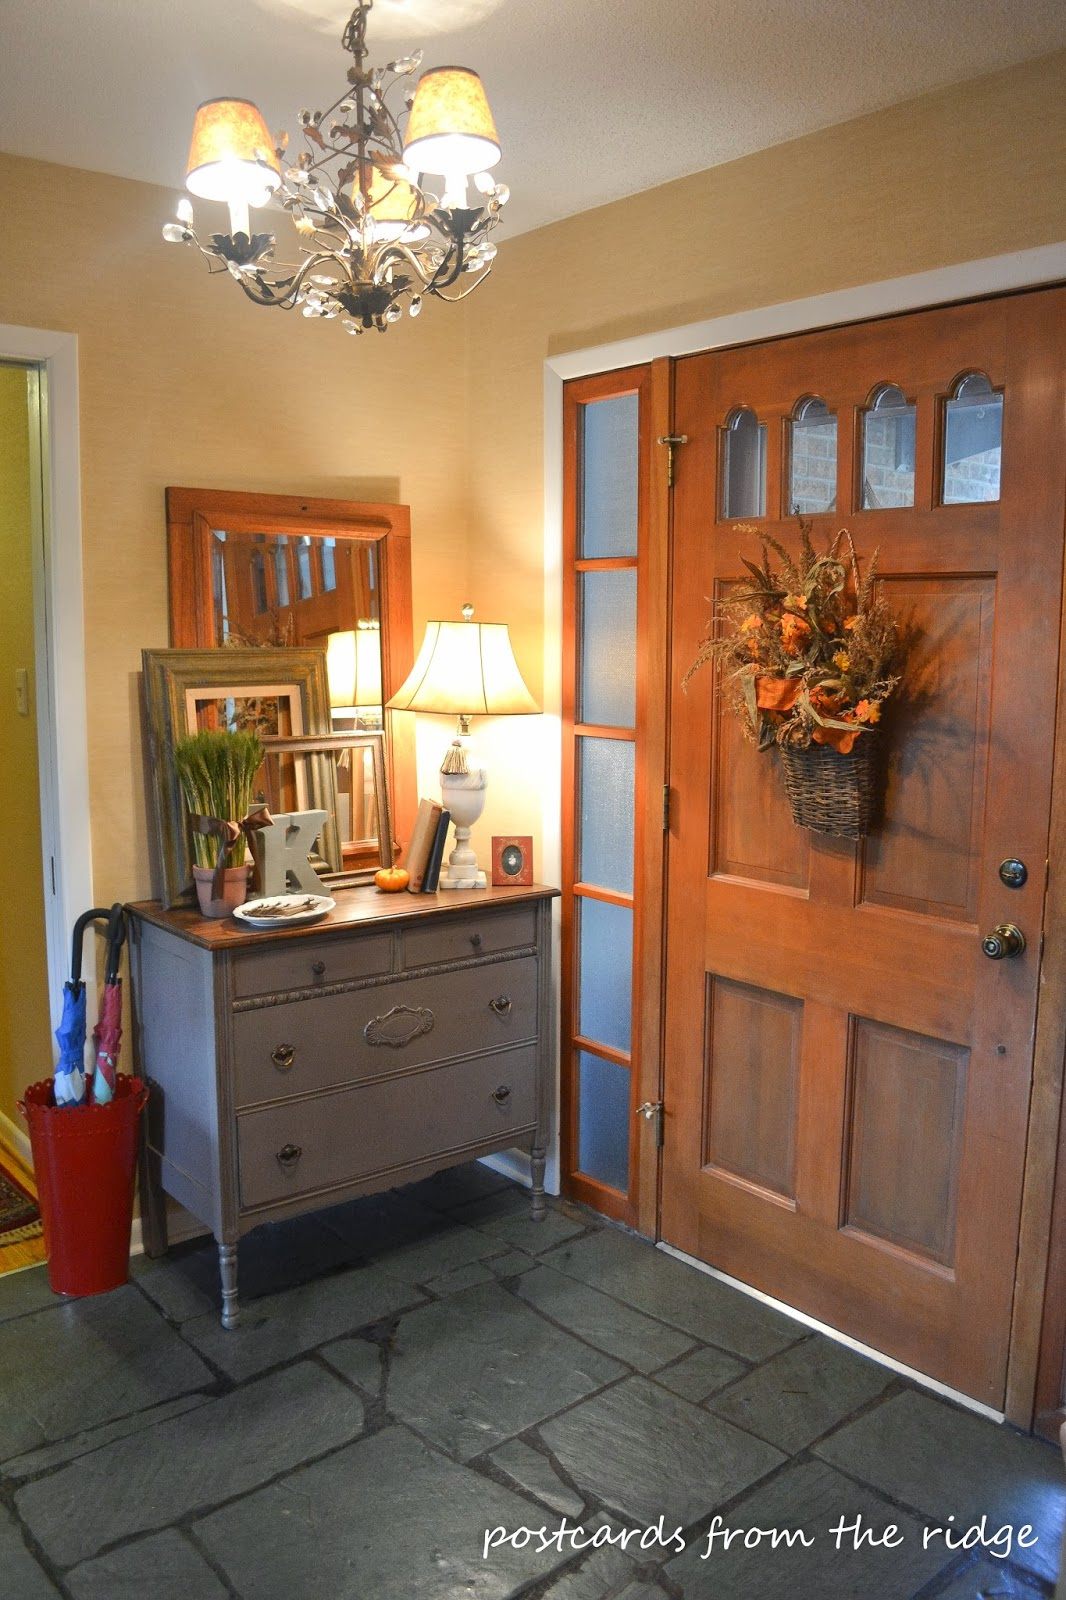 1960's updated ranch style home tour - Debbiedoos